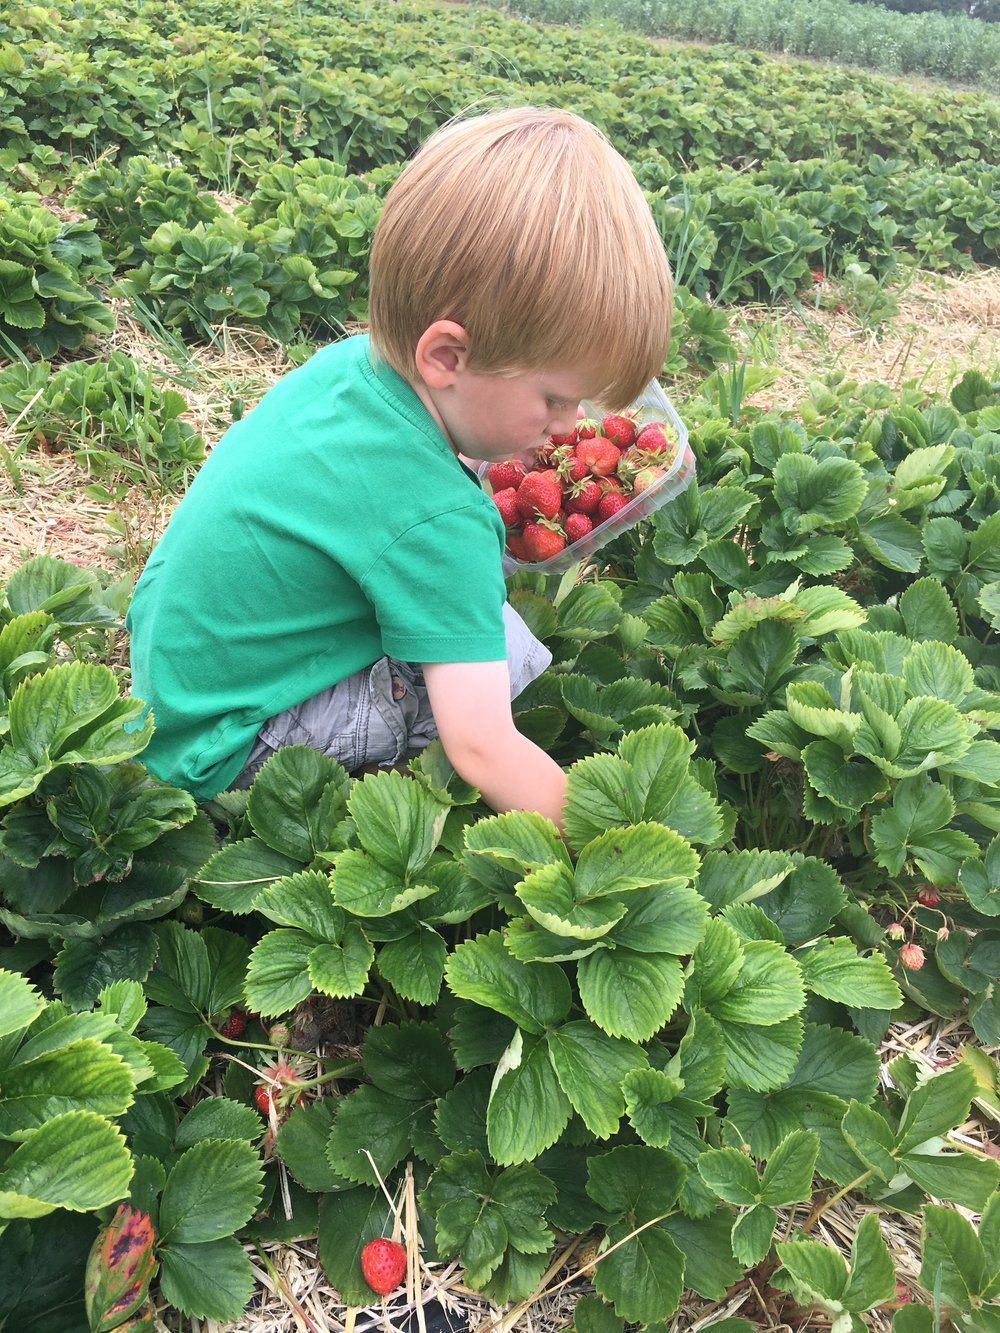 Fruit picking! Great way to get kids interested in fruit